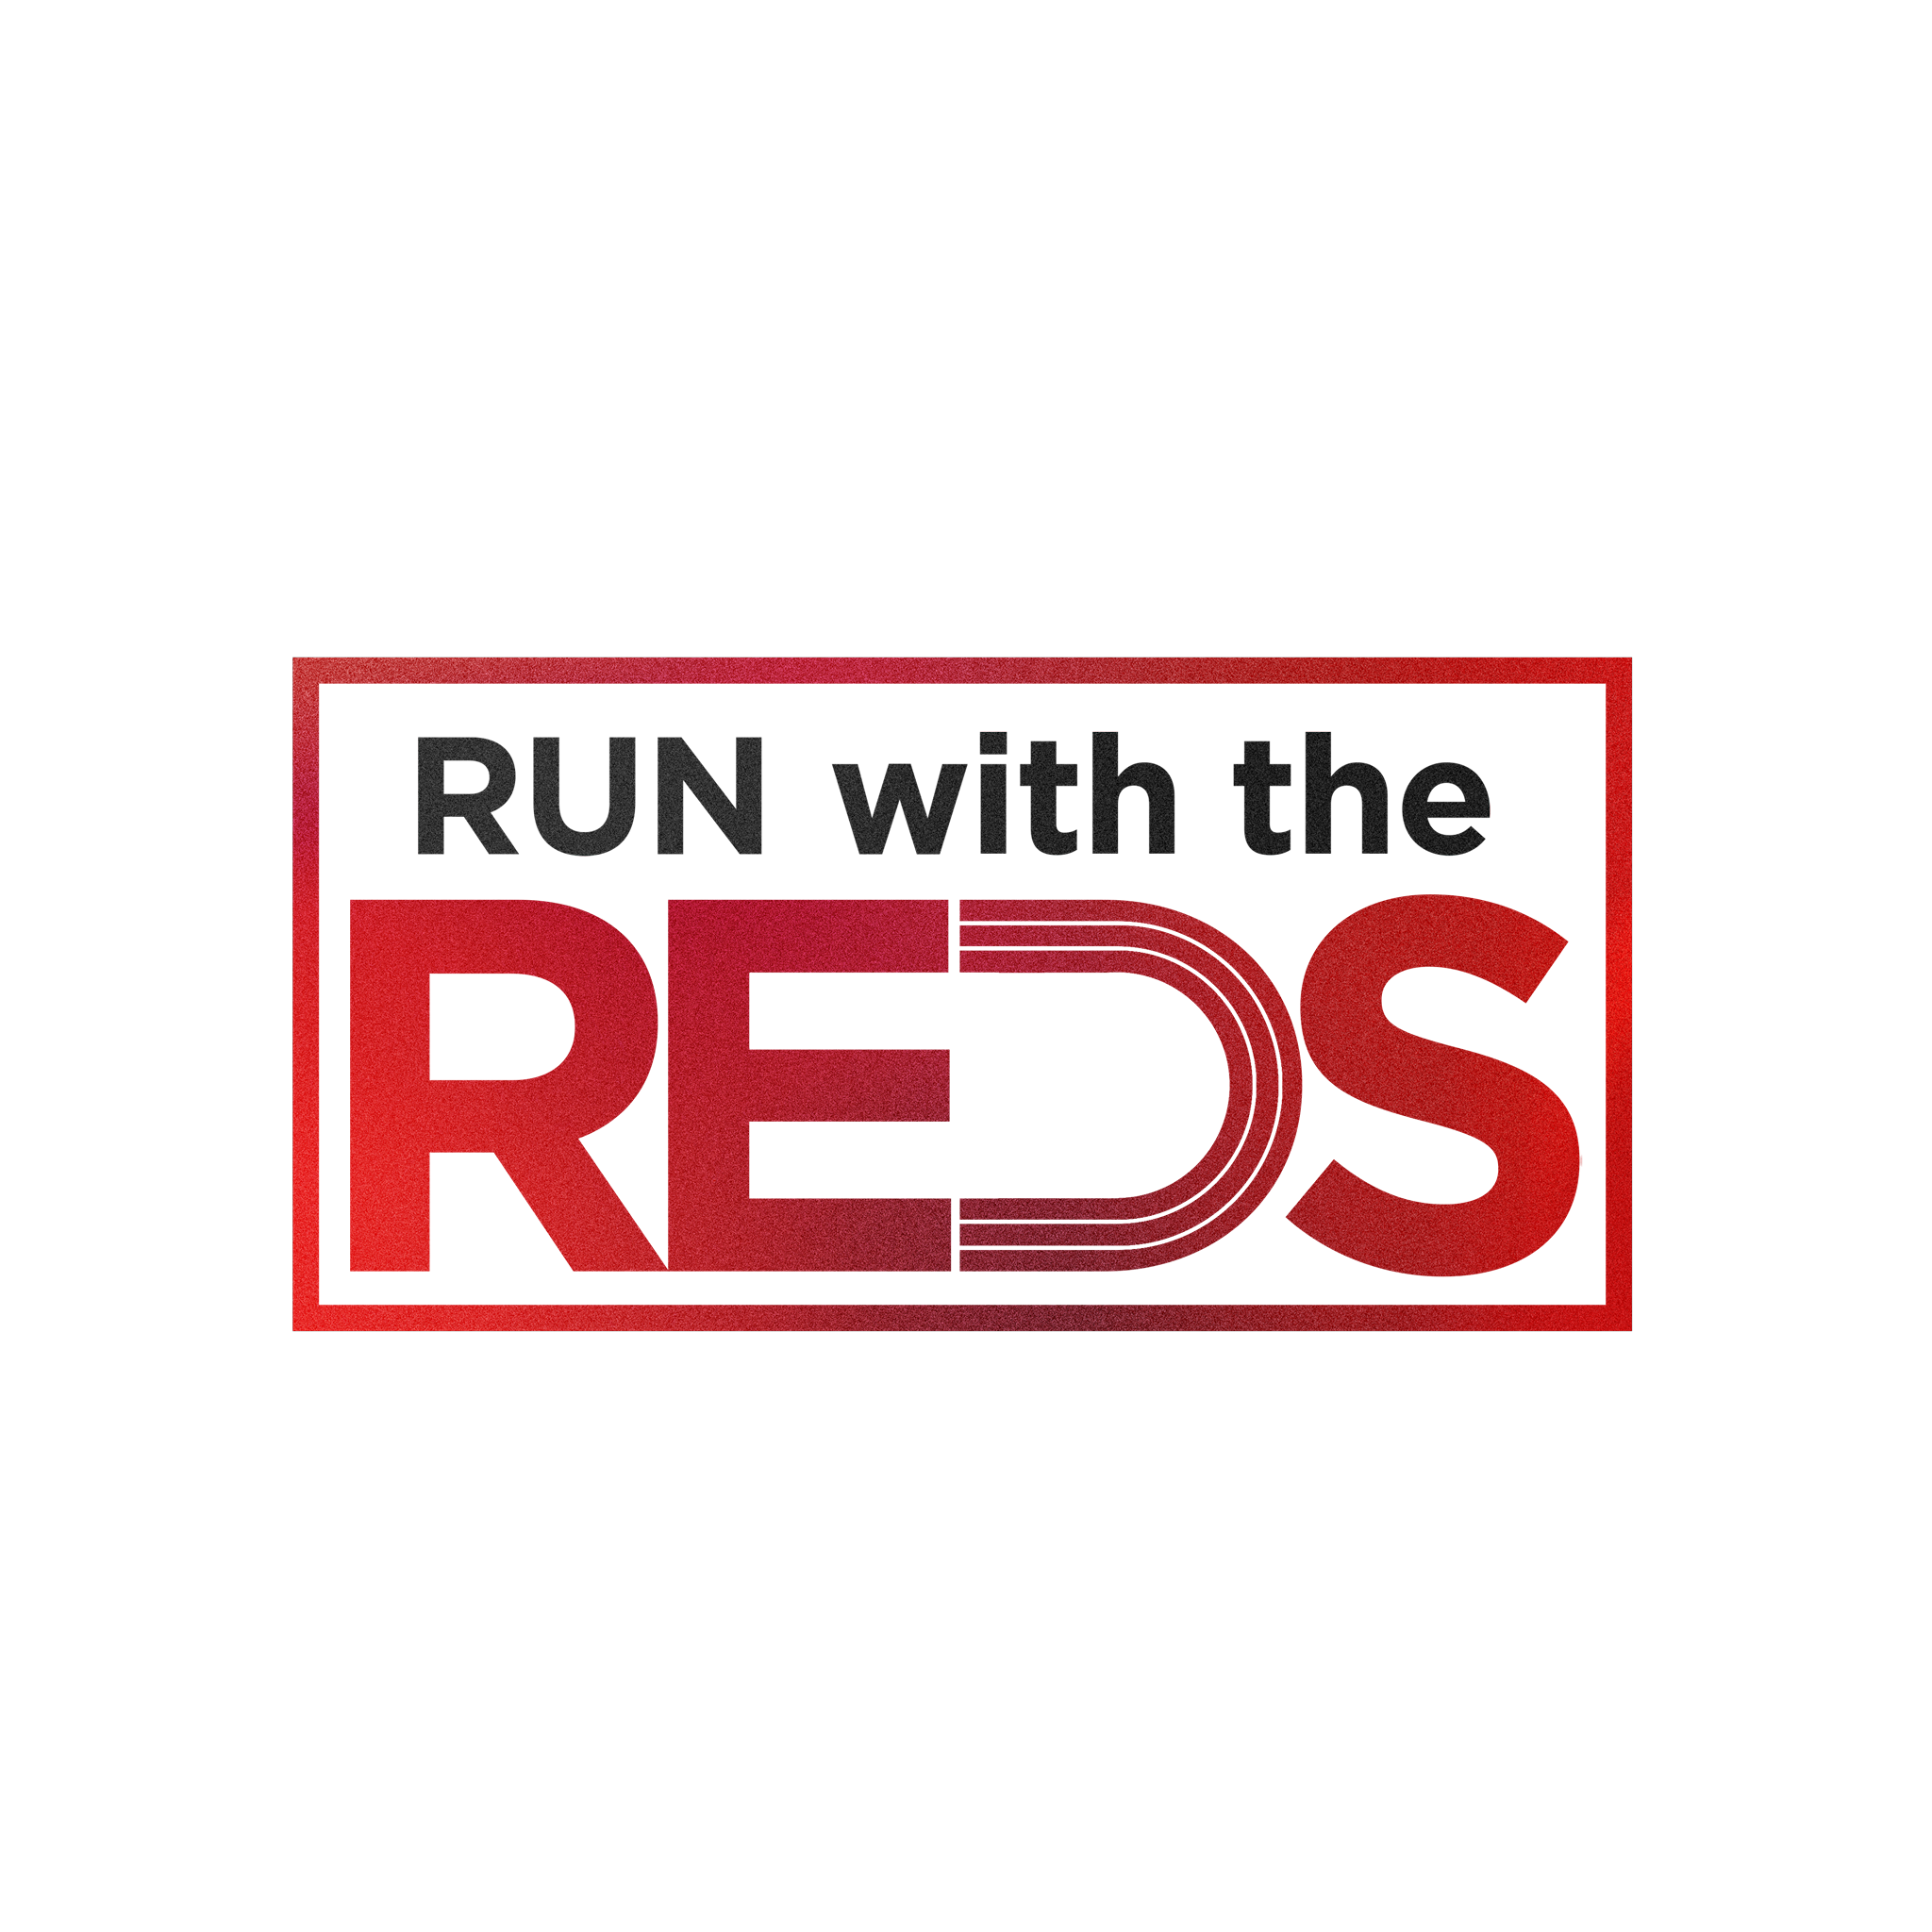 Run with the Reds